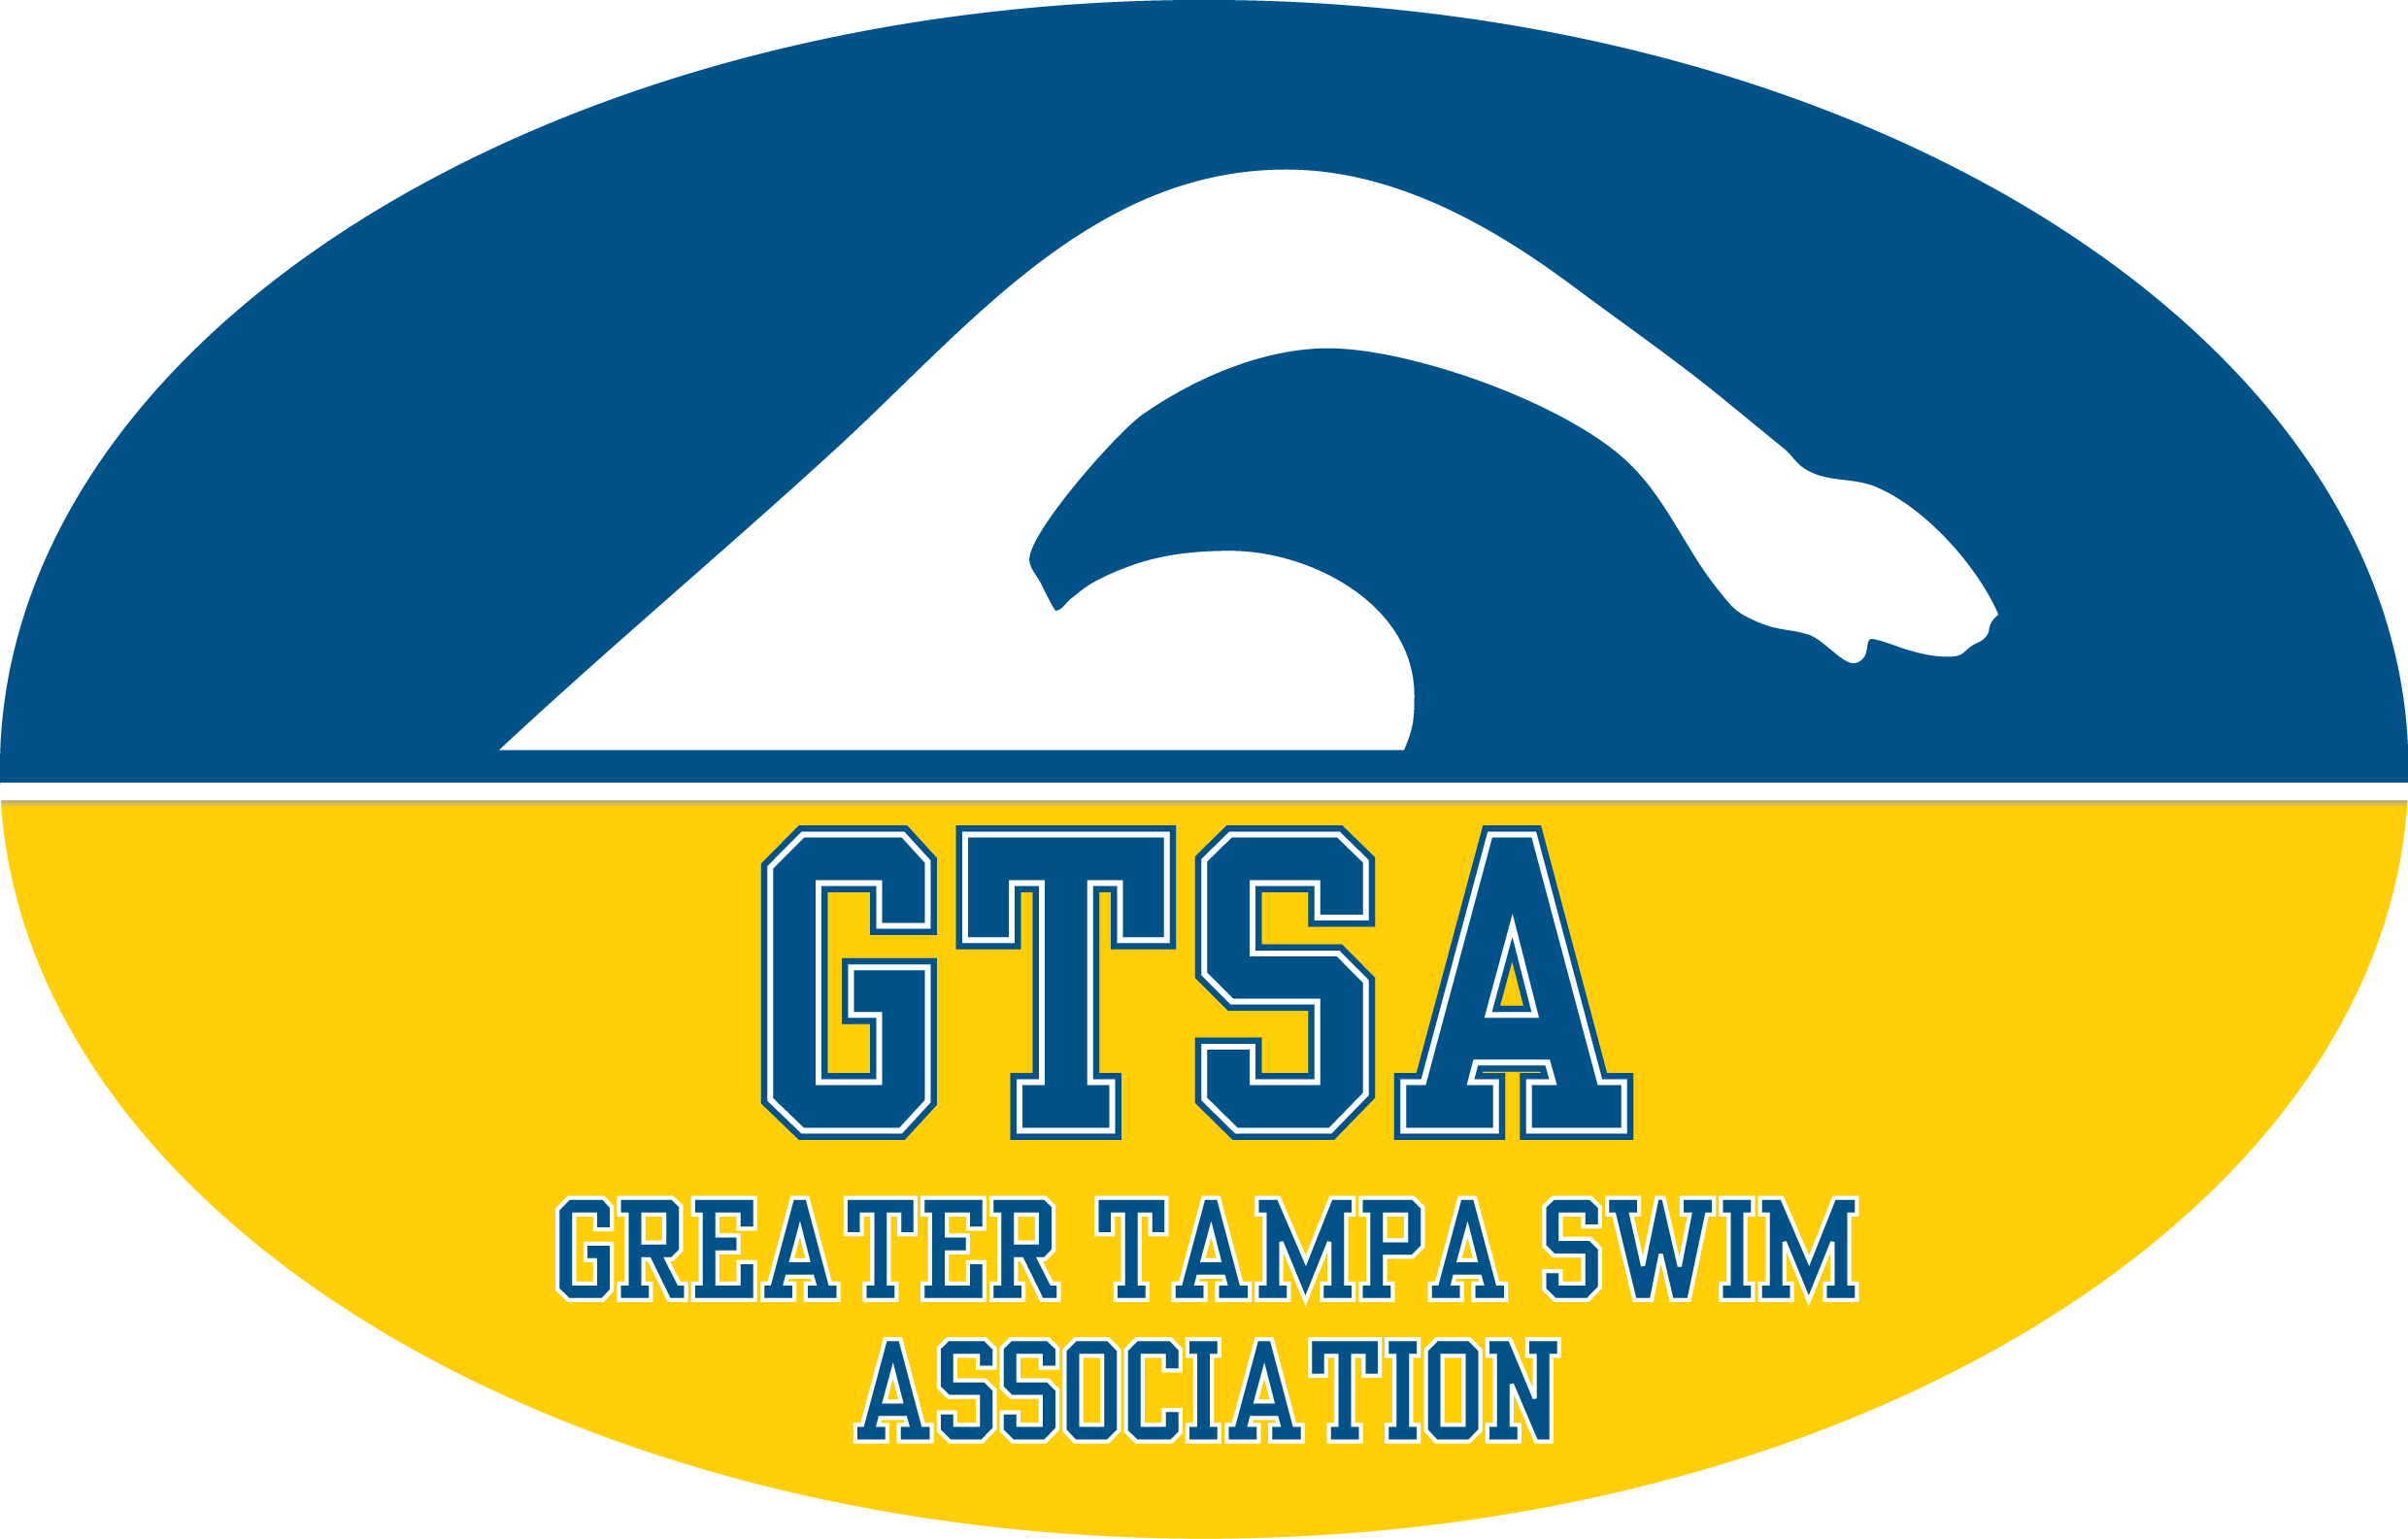 Greater Tampa Swim Association